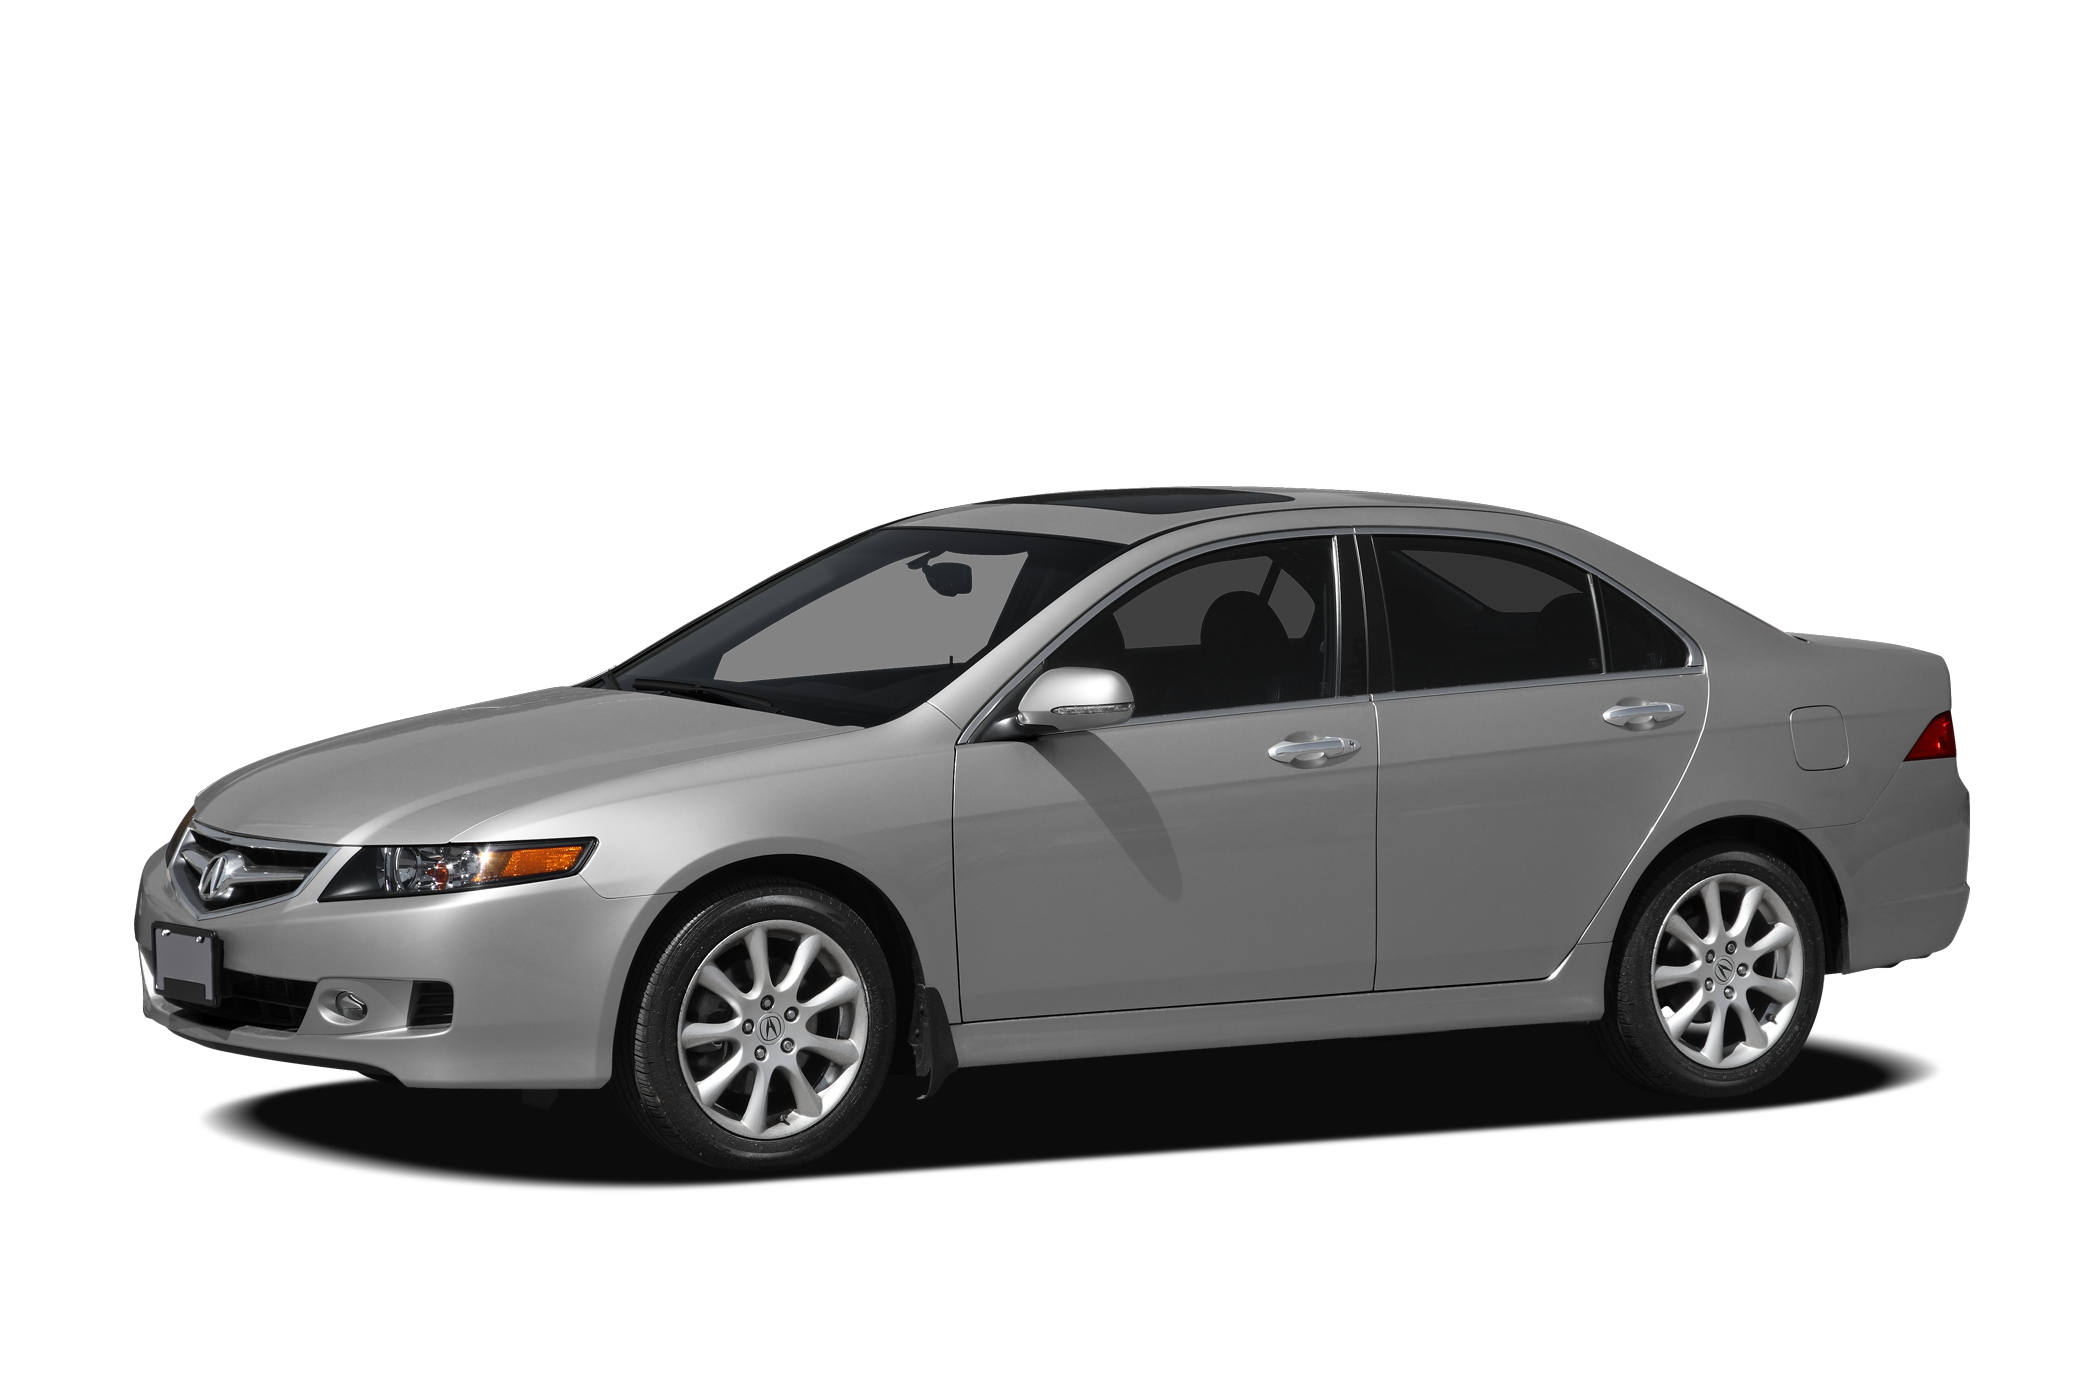 Used 2008 Acura TSX For Sale | West Milford NJ